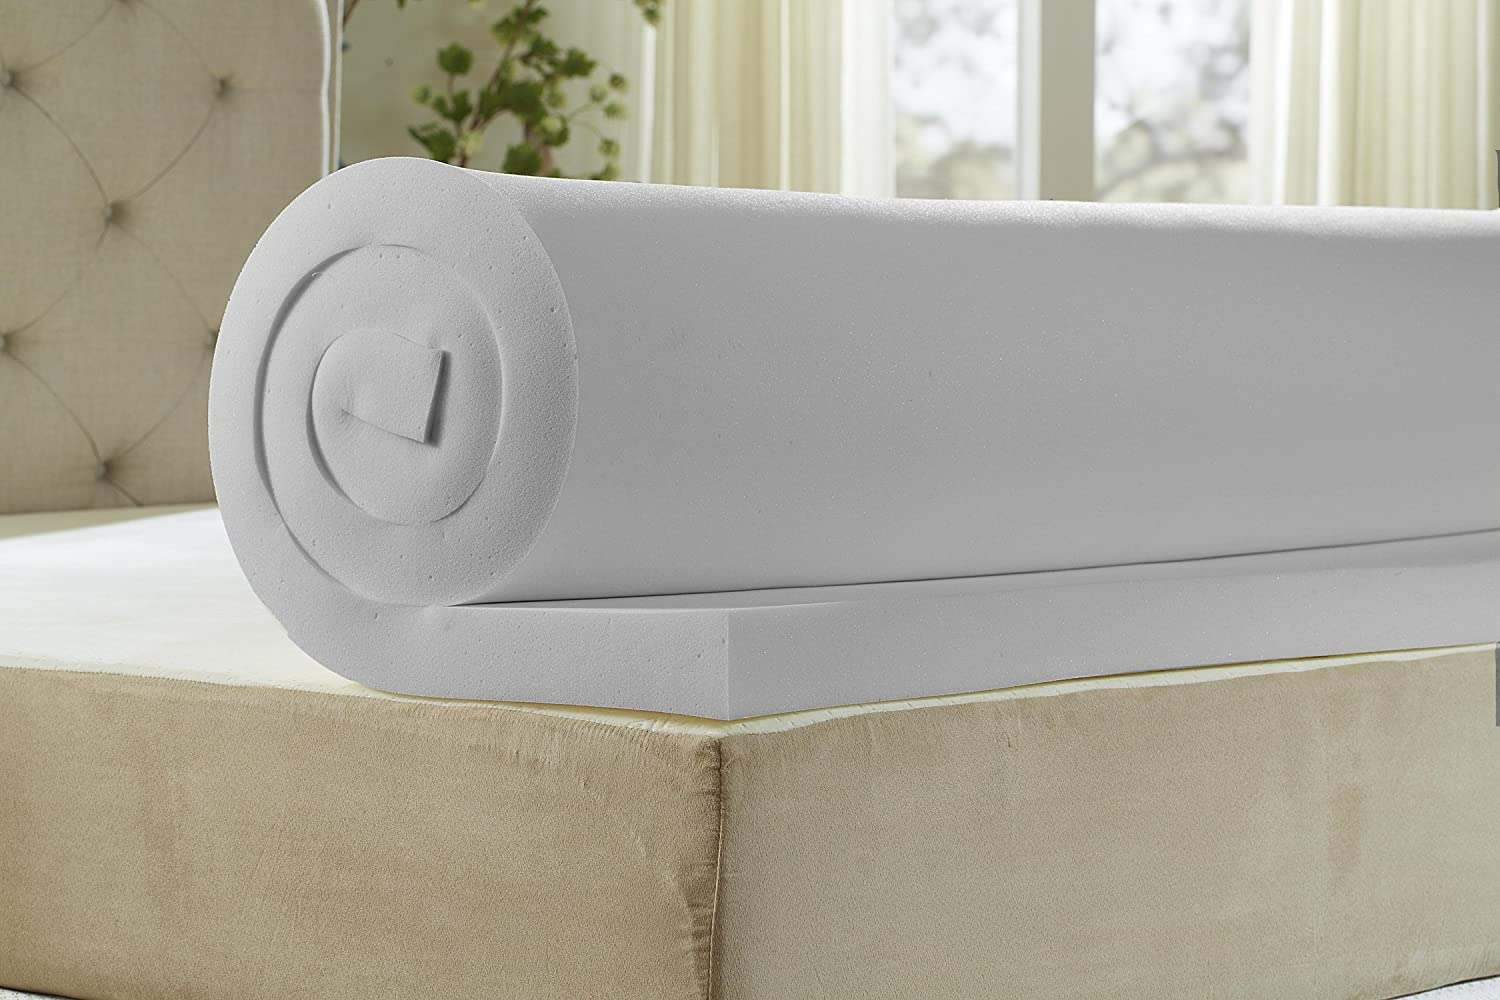 Natures Sleep 2.5 Inch Memory Foam Mattress Topper Review